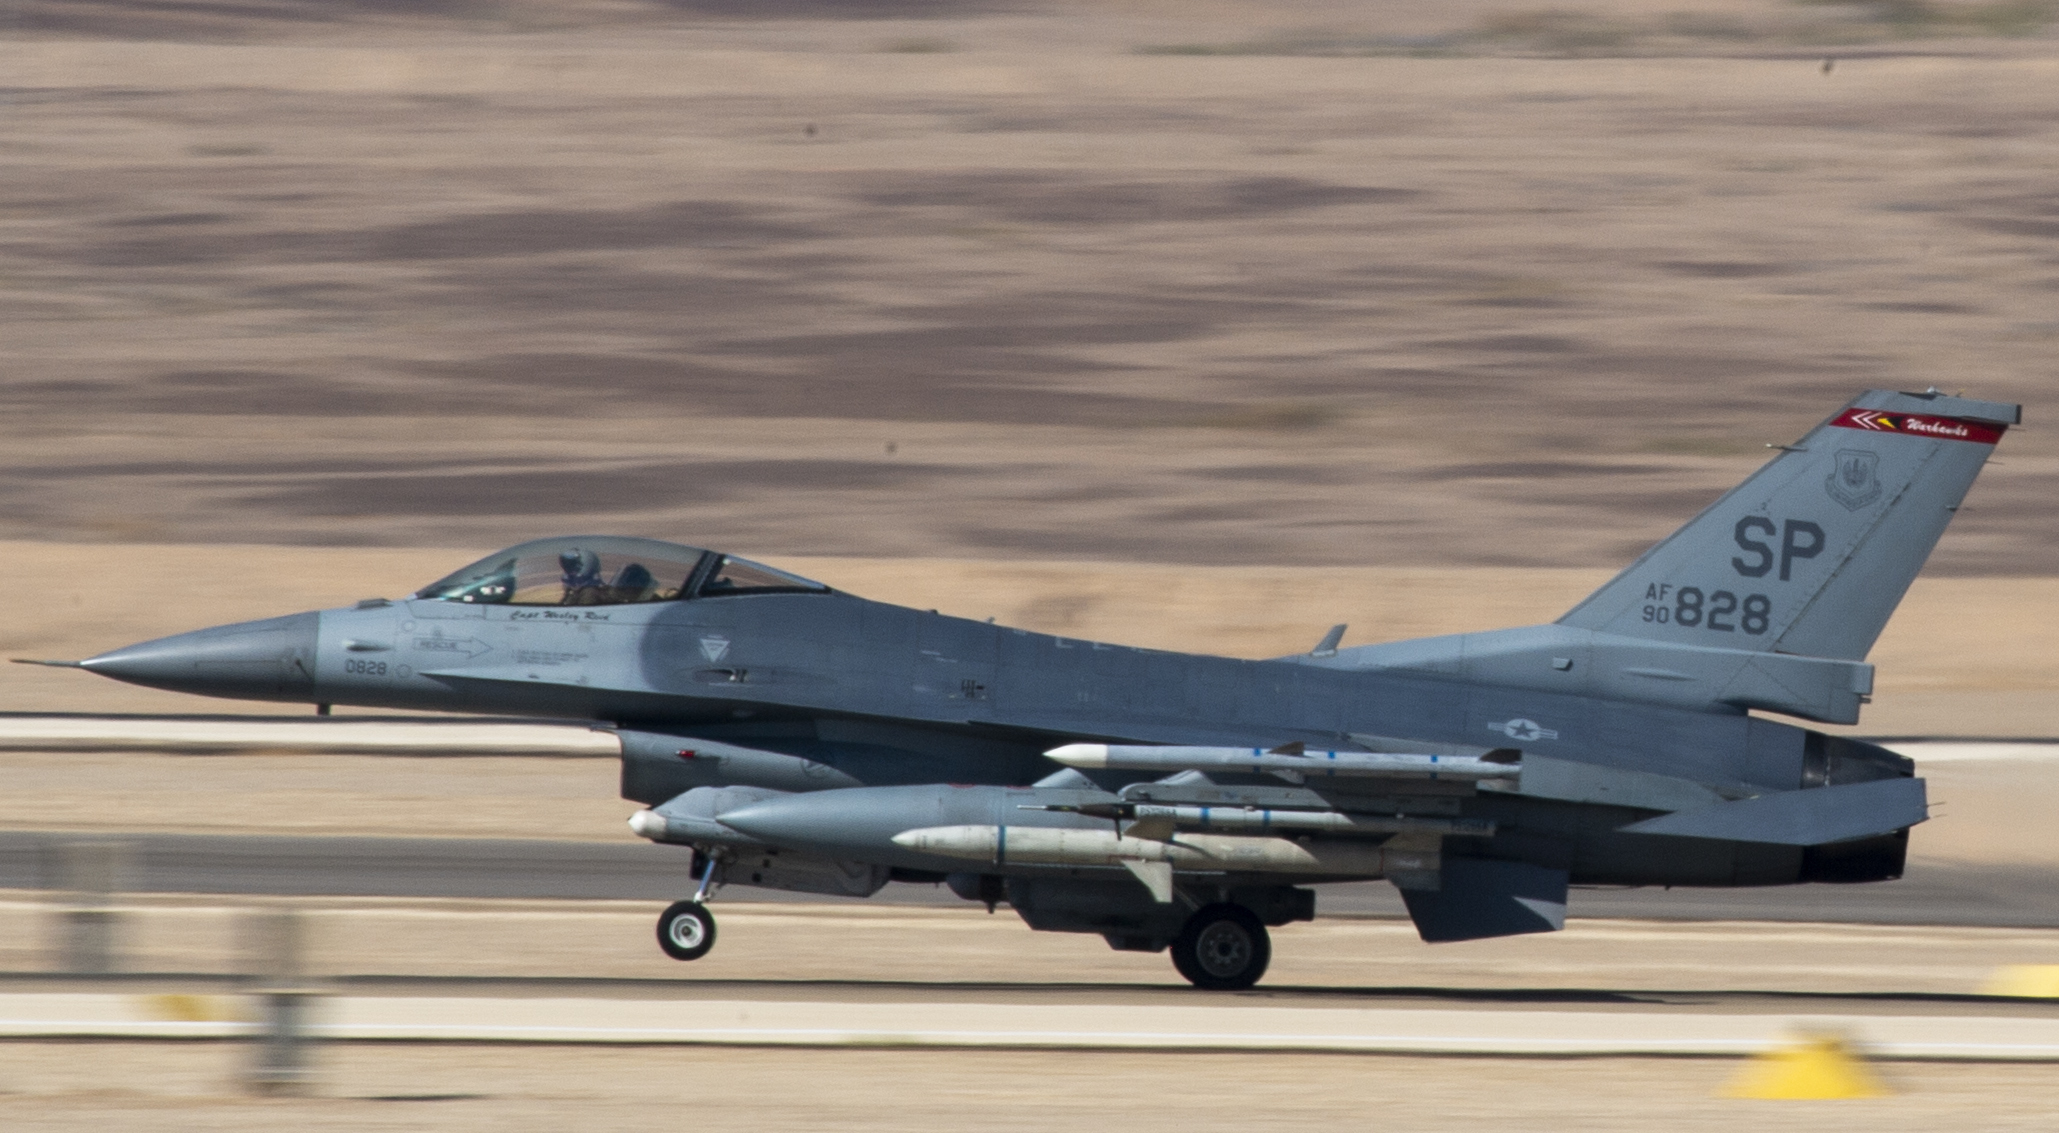 A U.S. Air Force F-16 takes off during Blue Flag at Uvda Air Base, Israel, on Nov. 4, 2019. (Airman 1st Class Kyle Cope/U.S. Air Force)